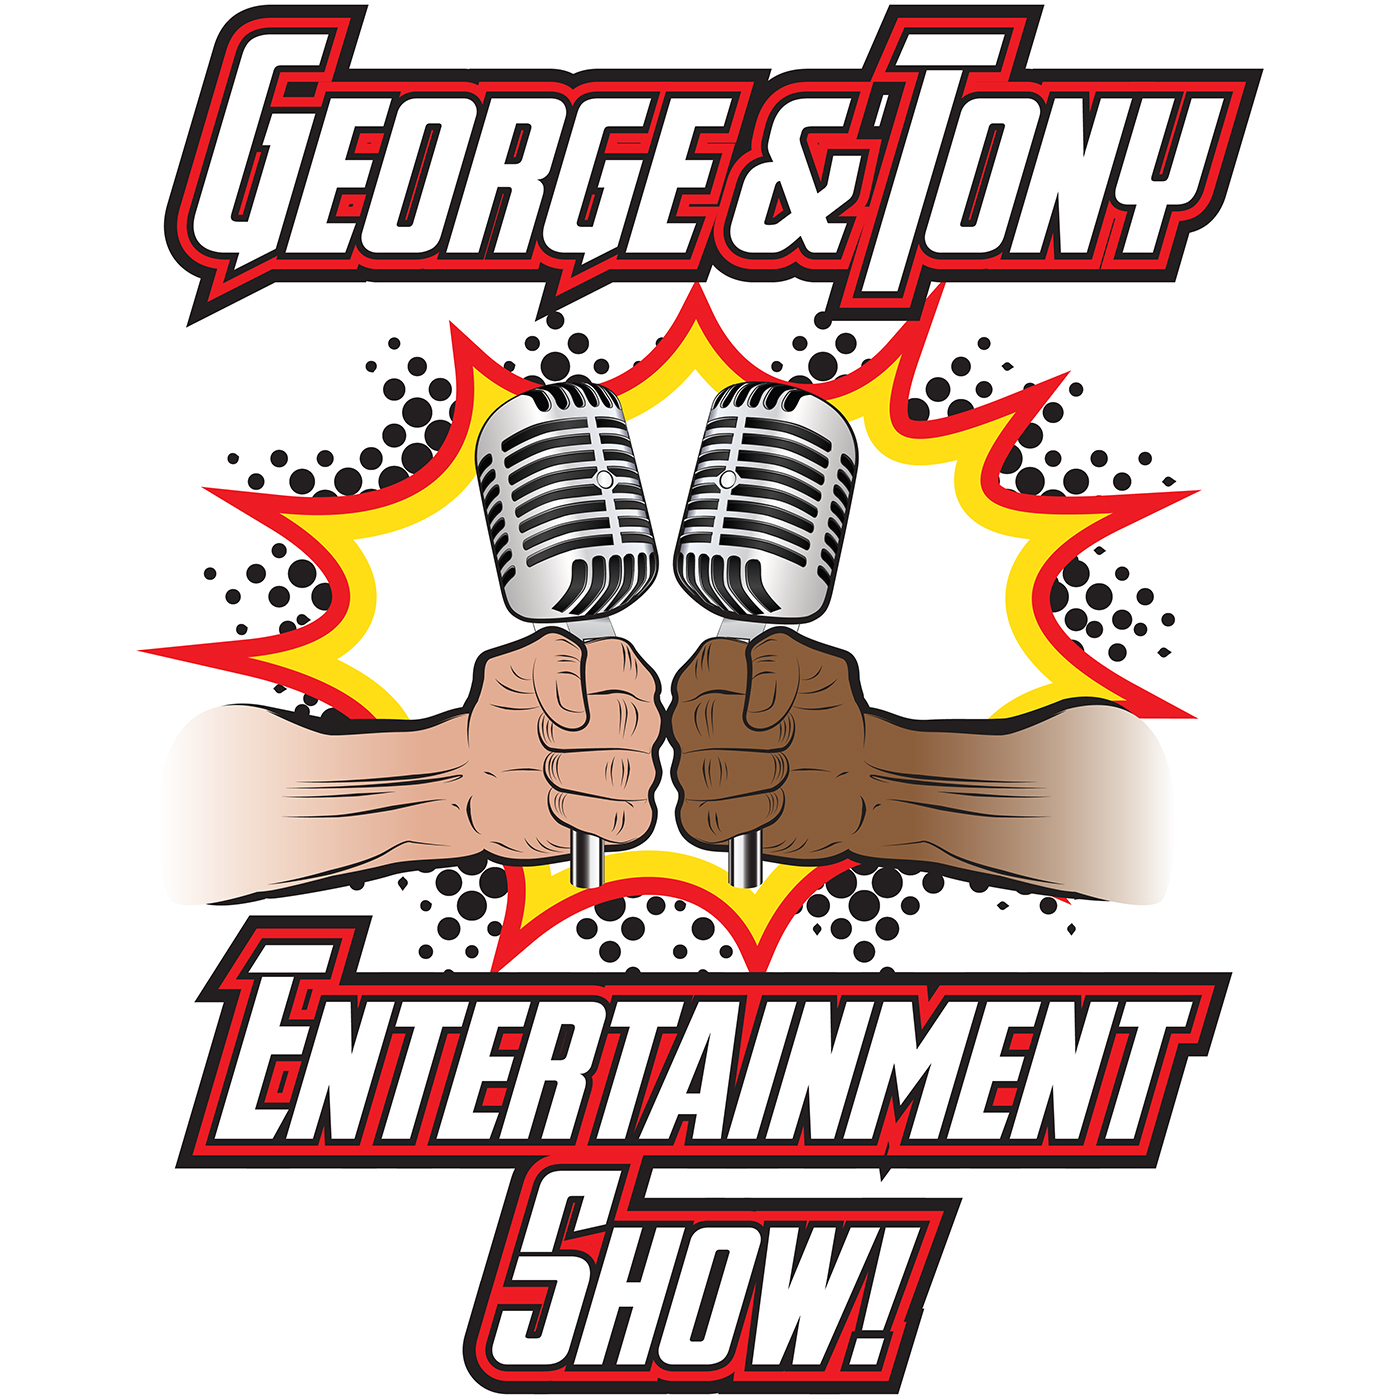 George and Tony Entertainment Show #136